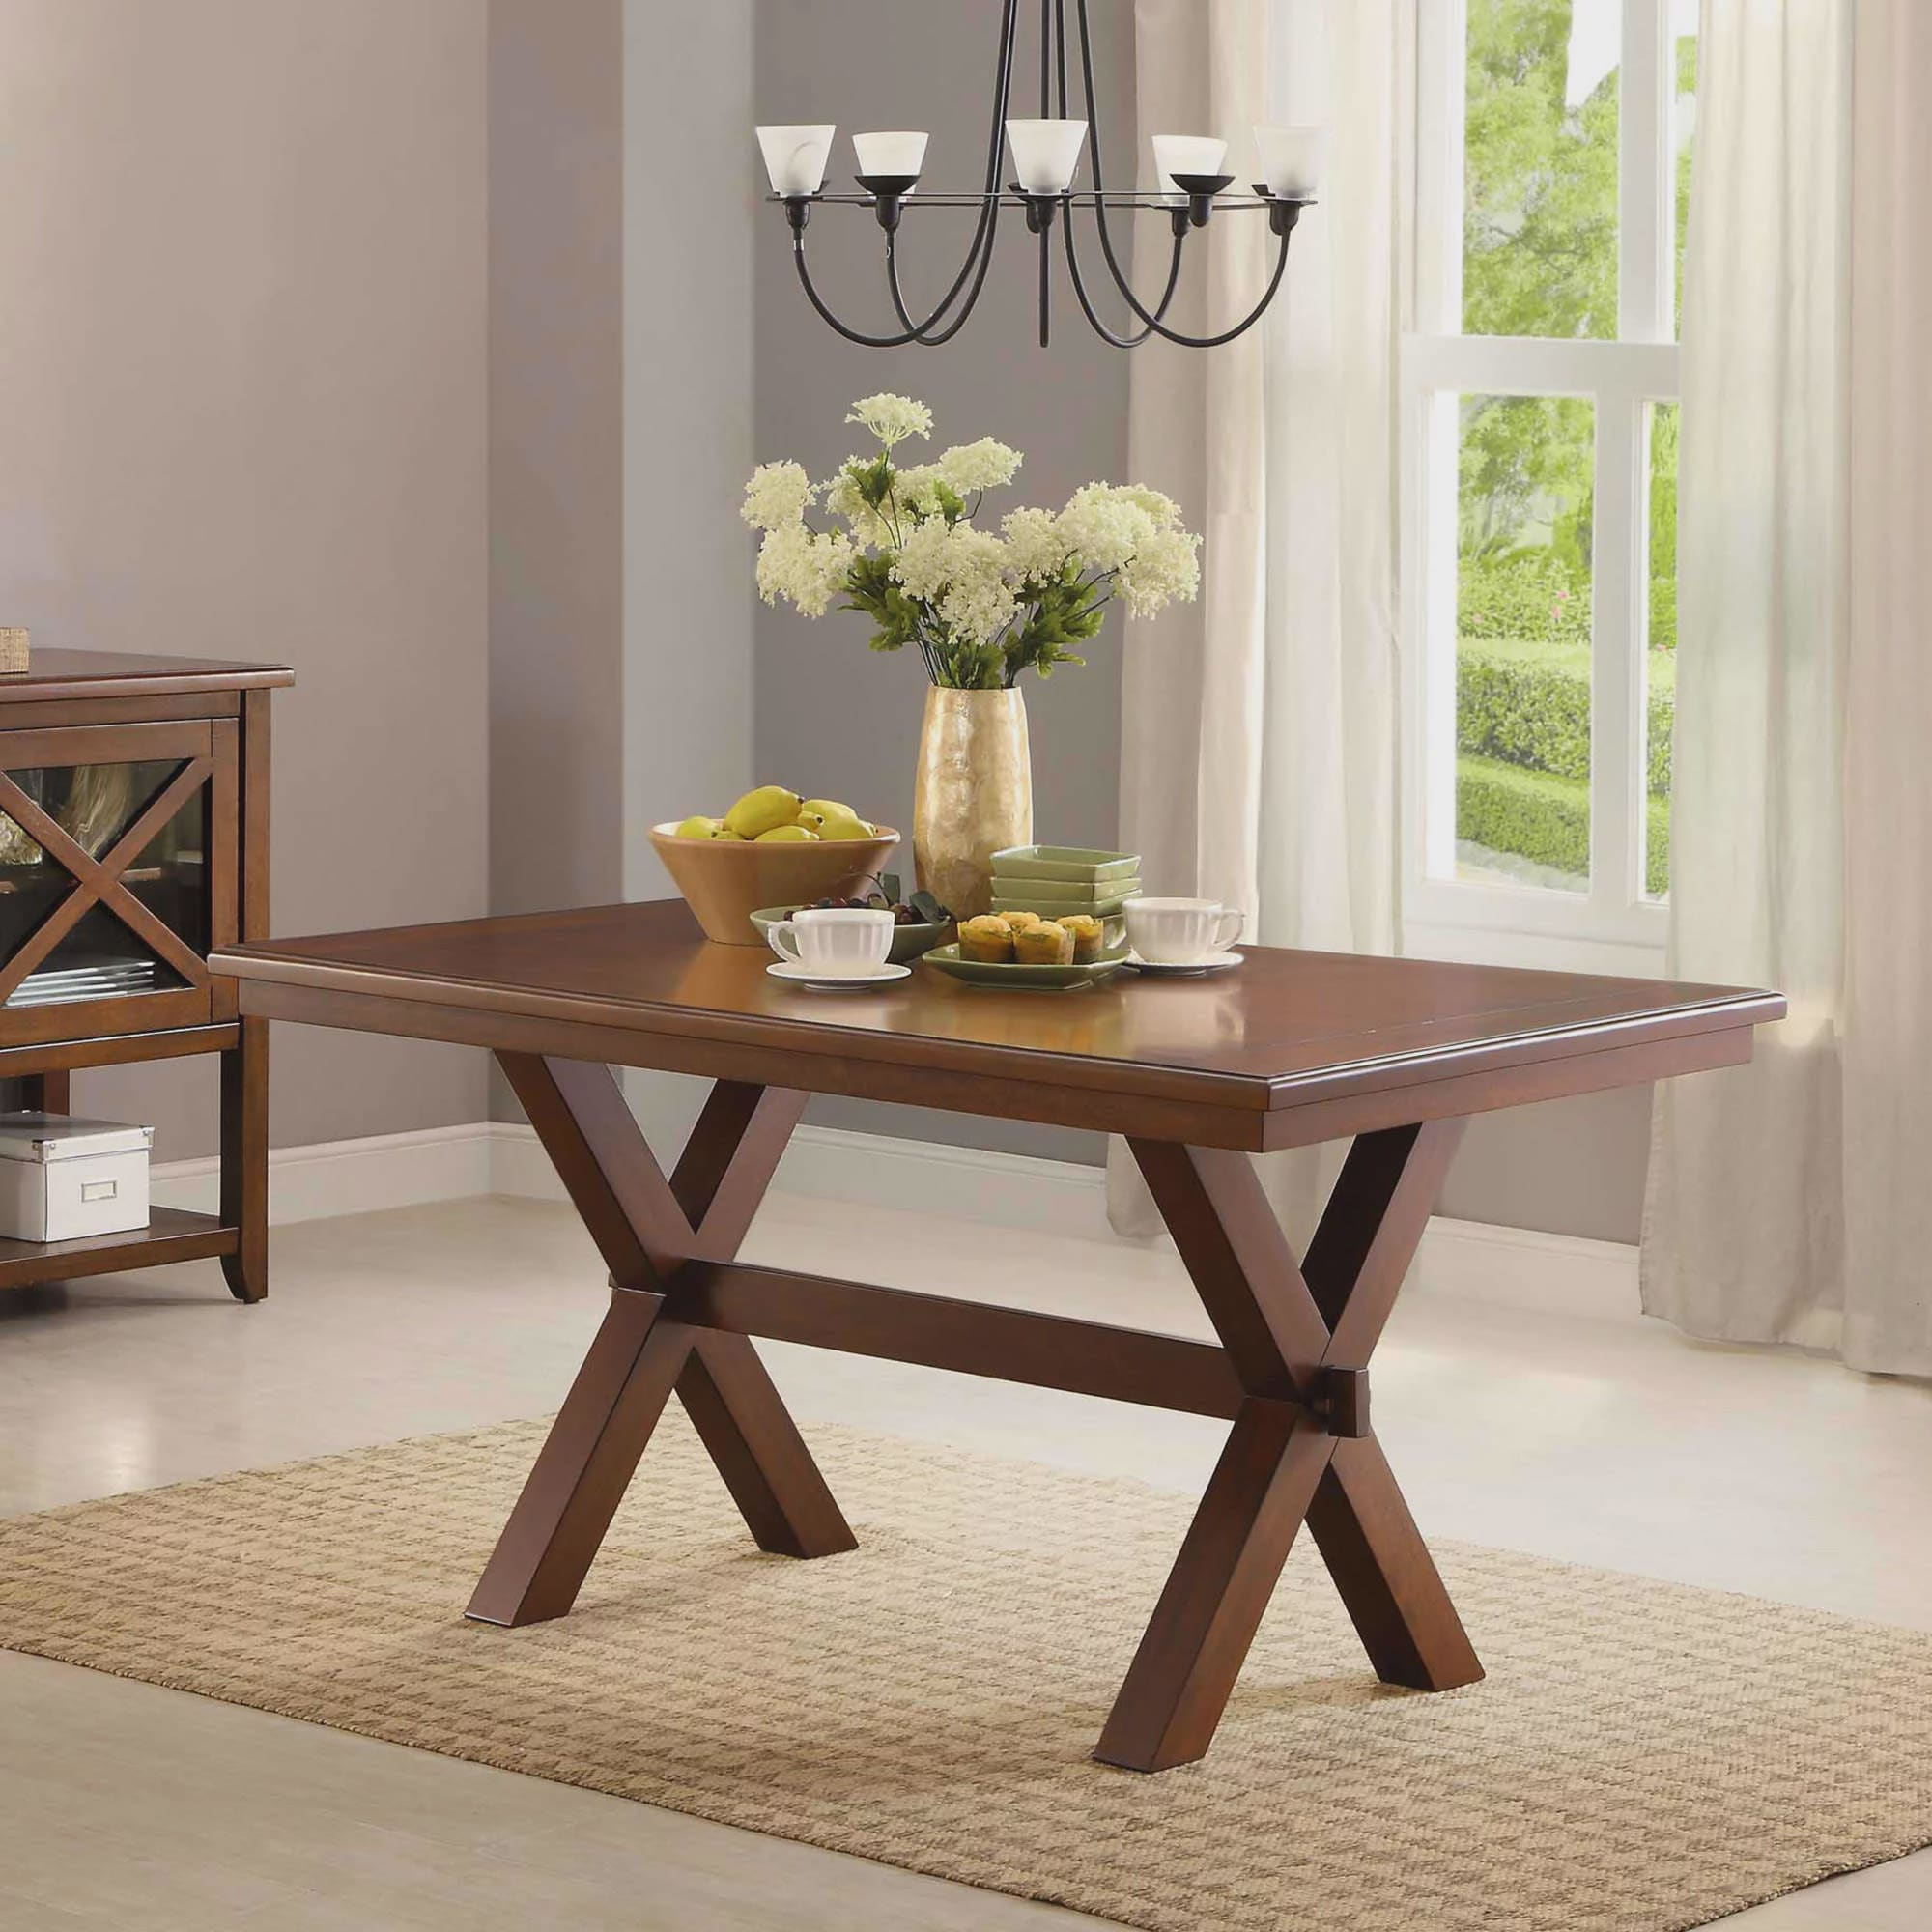 Better Homes Gardens Maddox Crossing Dining Table Walmart Com Walmart Com